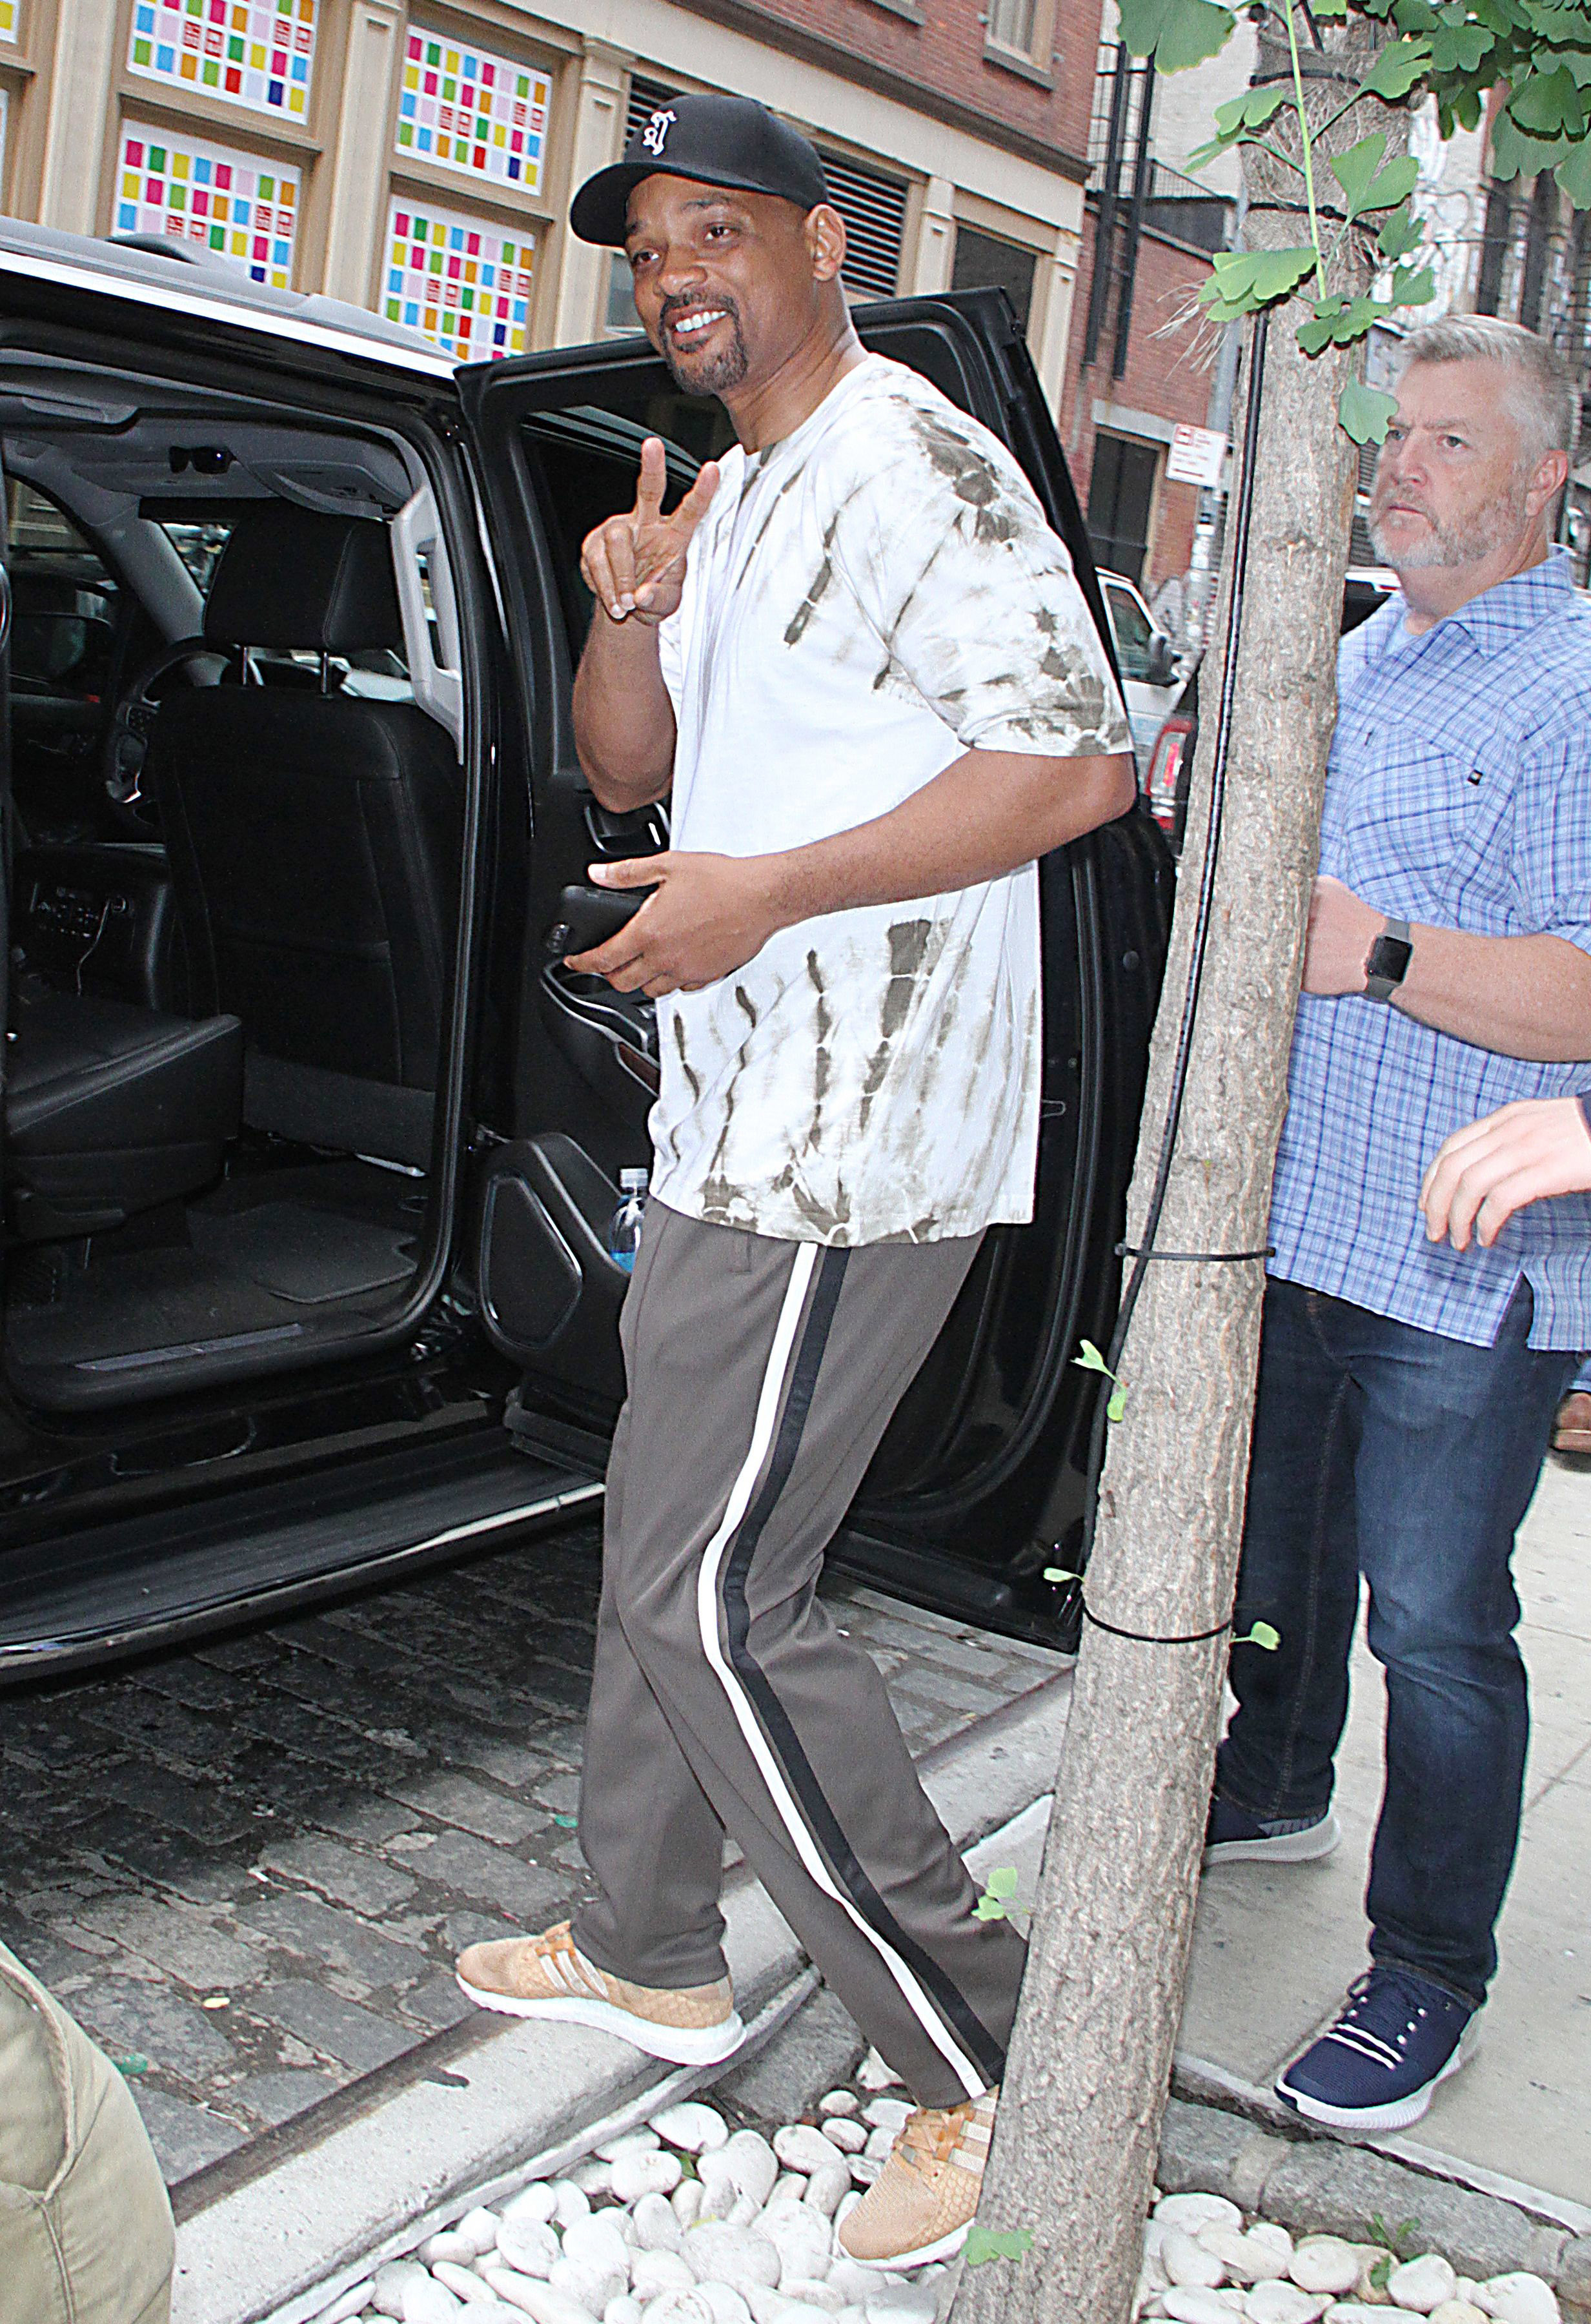 Will Smith flashes the peace sign in New York City on July 24, 2018.